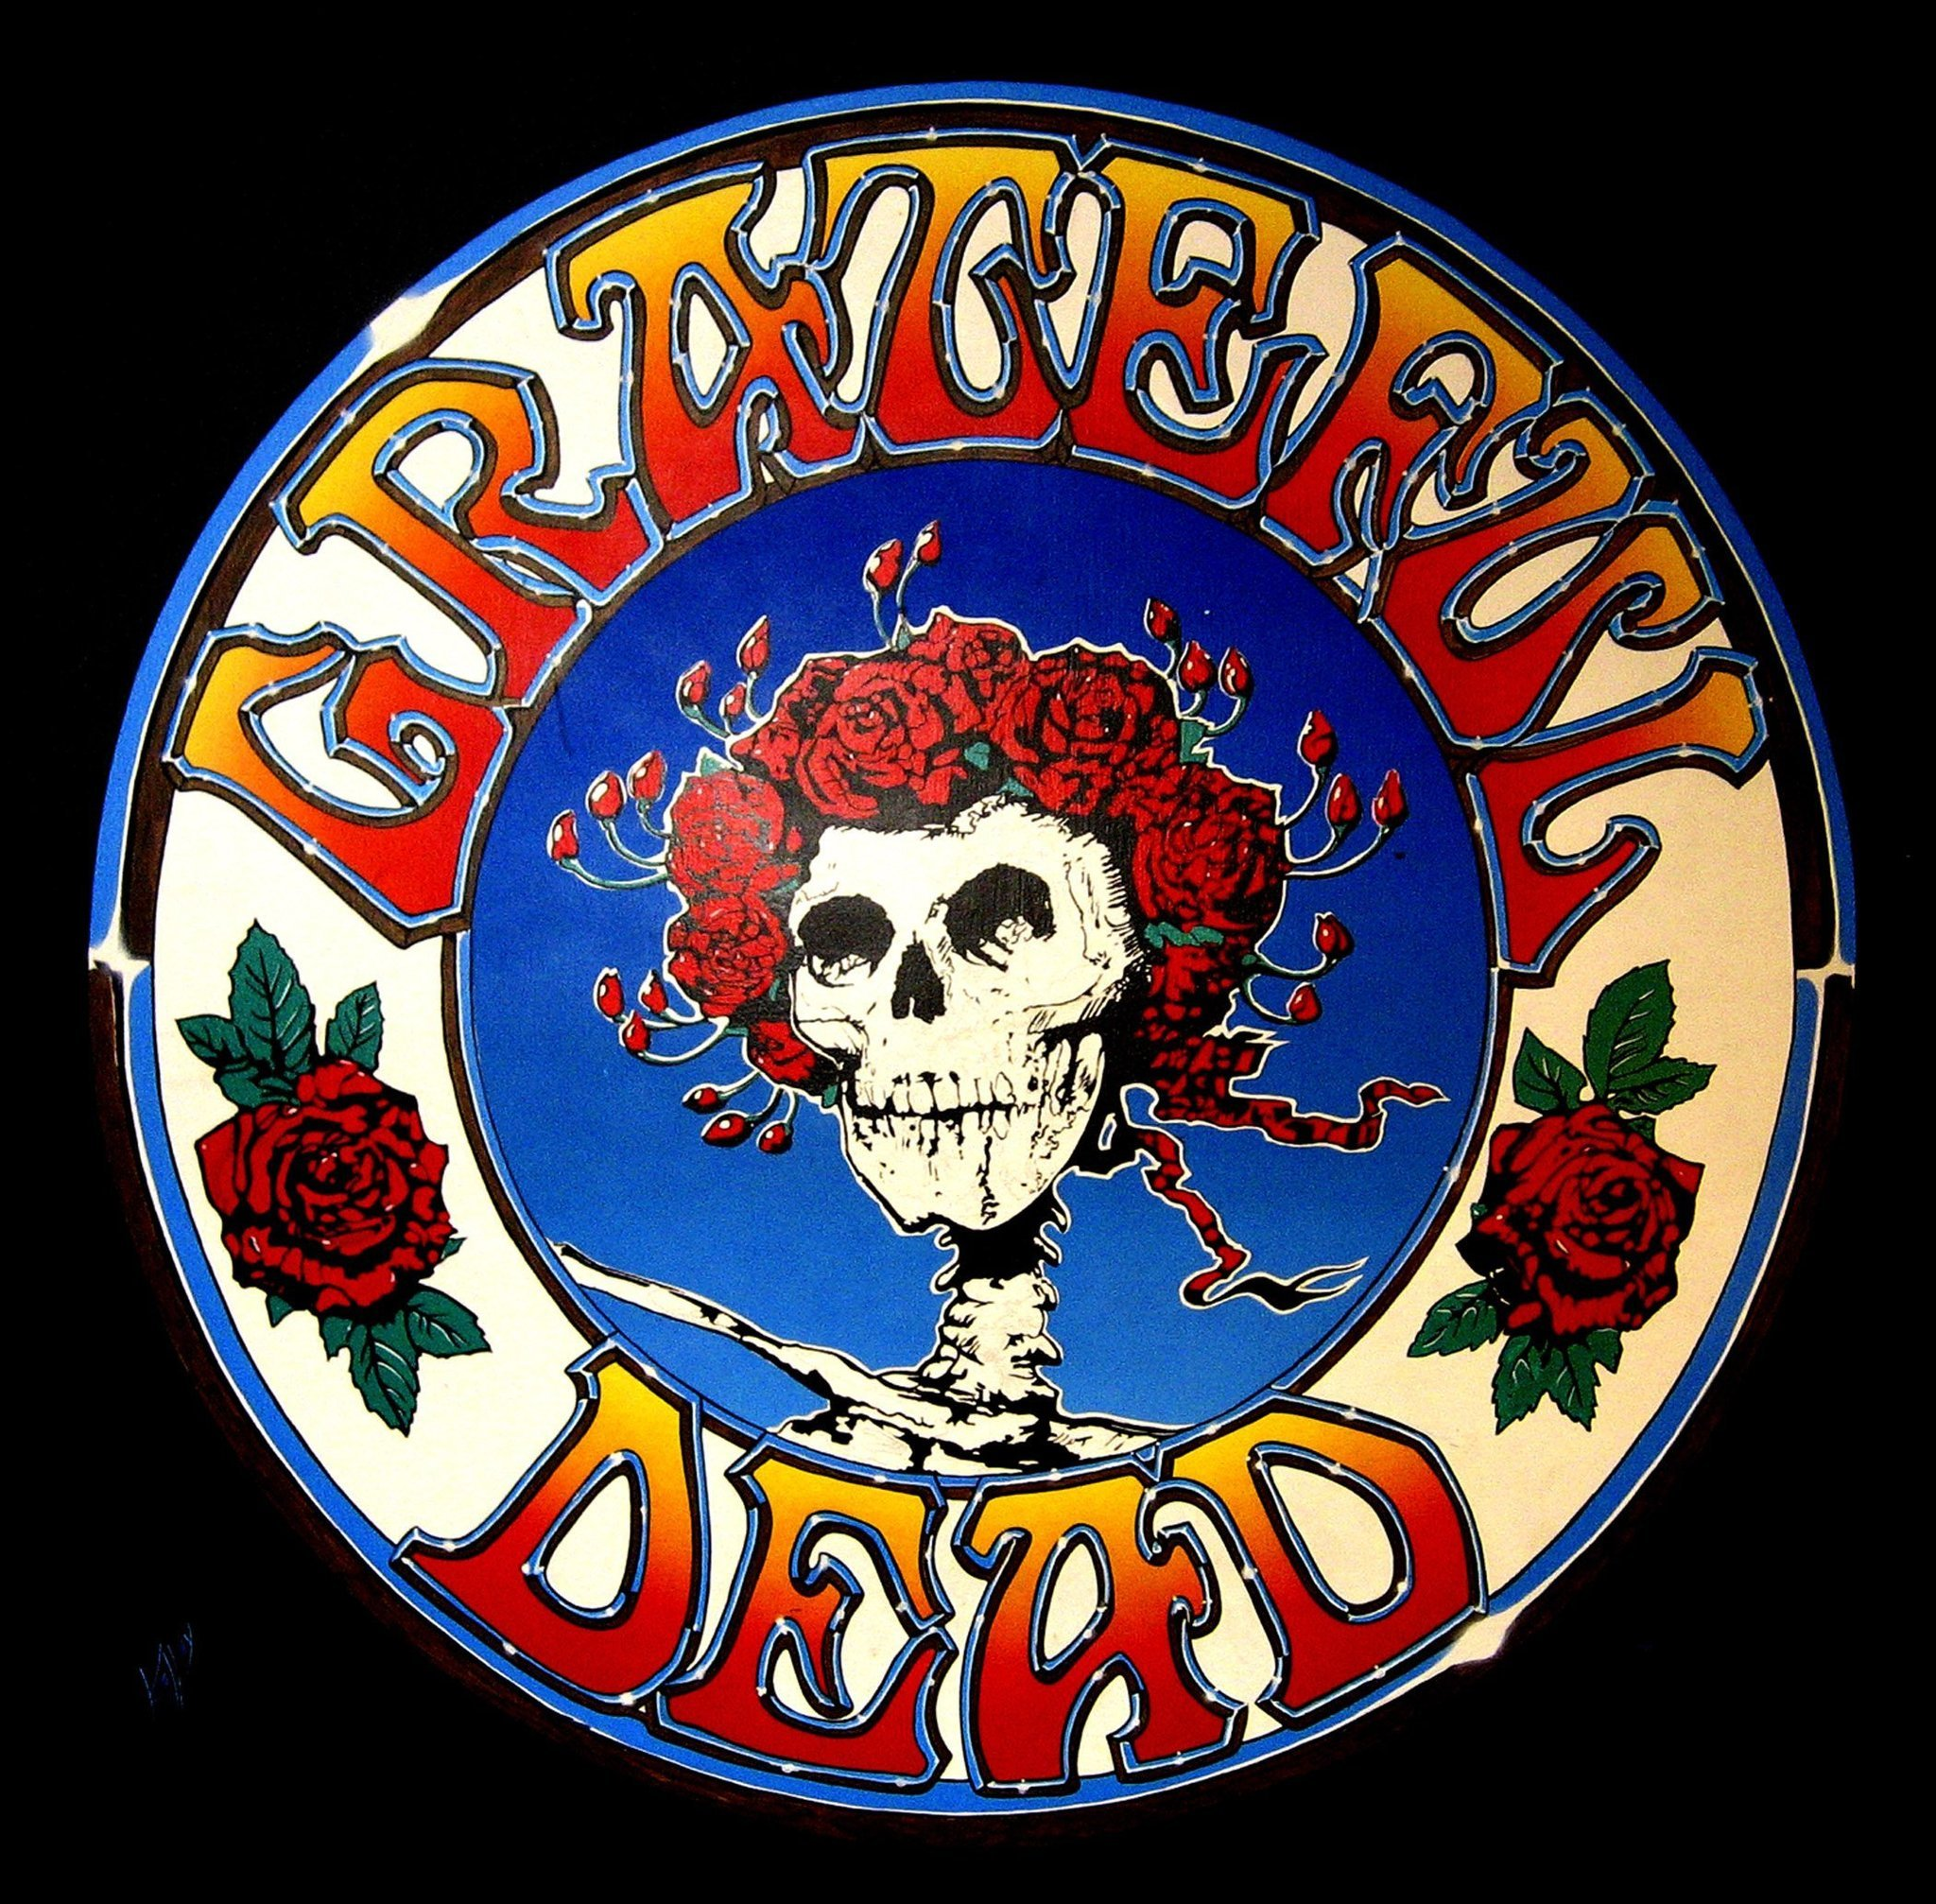 Grateful Dead Videos : grateful dead memorabilia to be auctioned in union il chicago tribune ~ Russianpoet.info Haus und Dekorationen